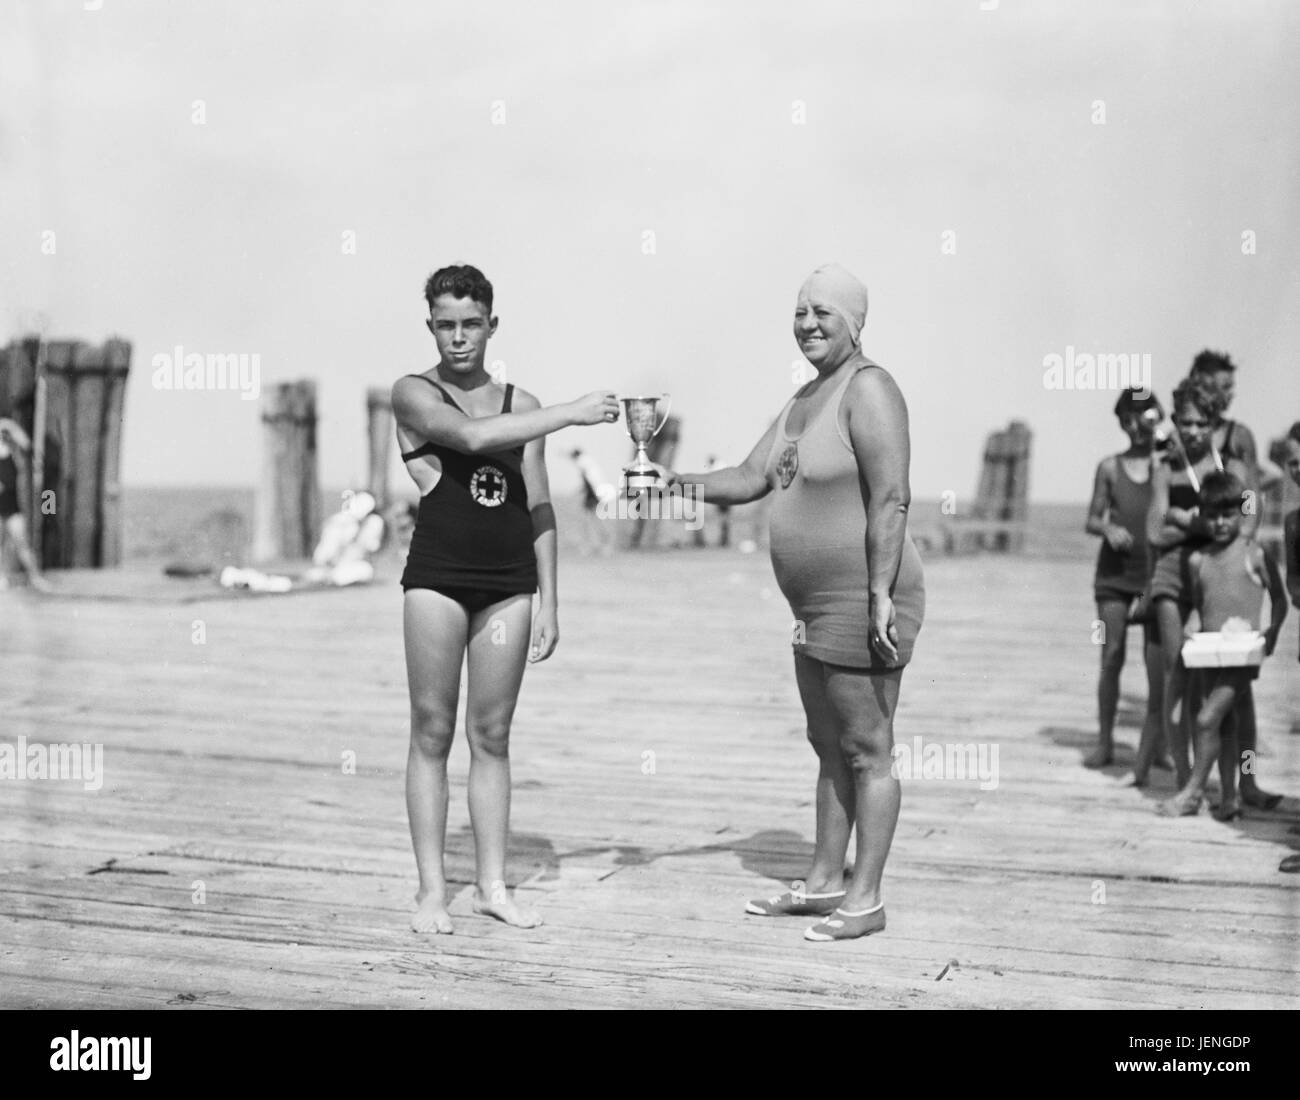 Two Swimmers Holding Trophy, Harris & Ewing, 1927 Stock Photo